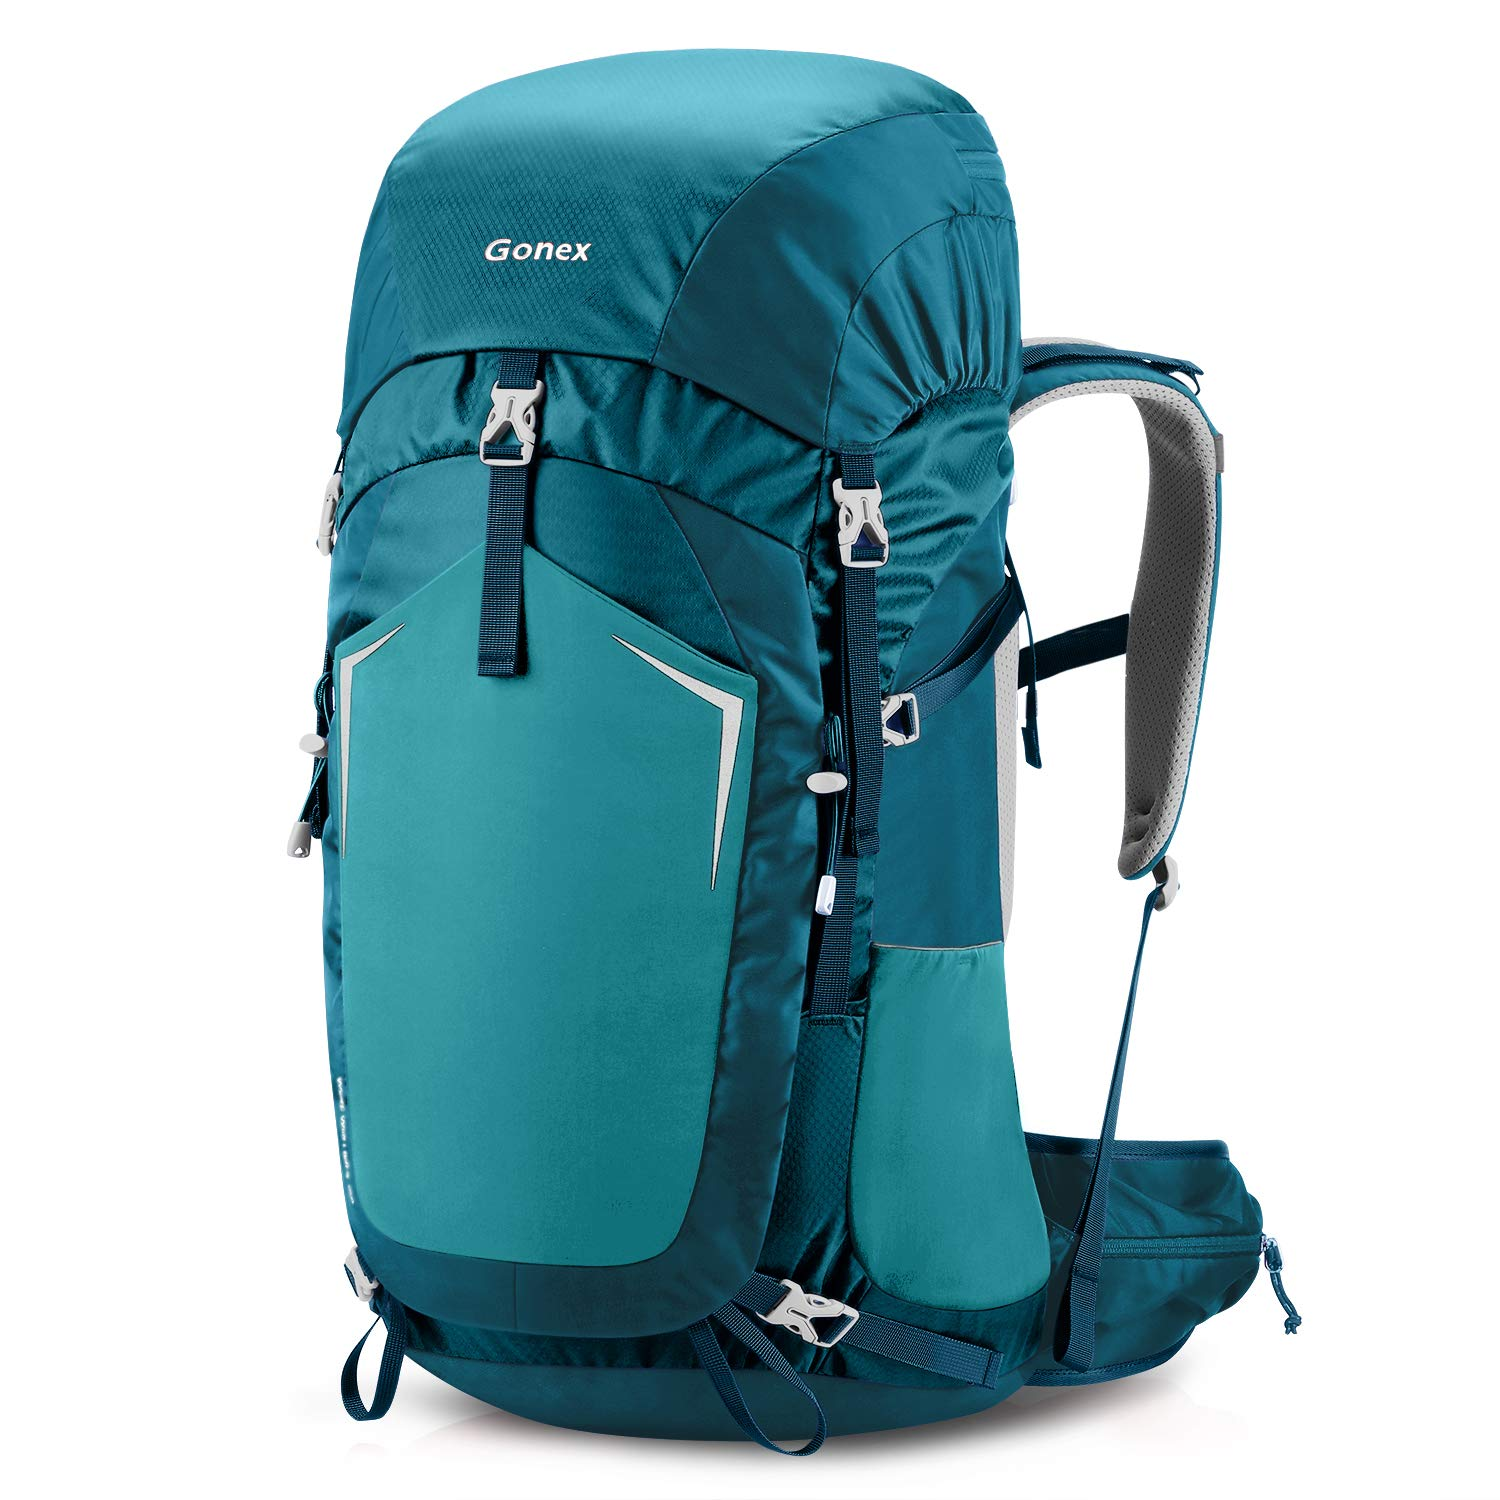 Gonex 55L Hiking Internal Frame Backpack Outdoor Backpacking Camping Trekking Climbing Backpack with Rain Cover for Men Women Blue by Gonex